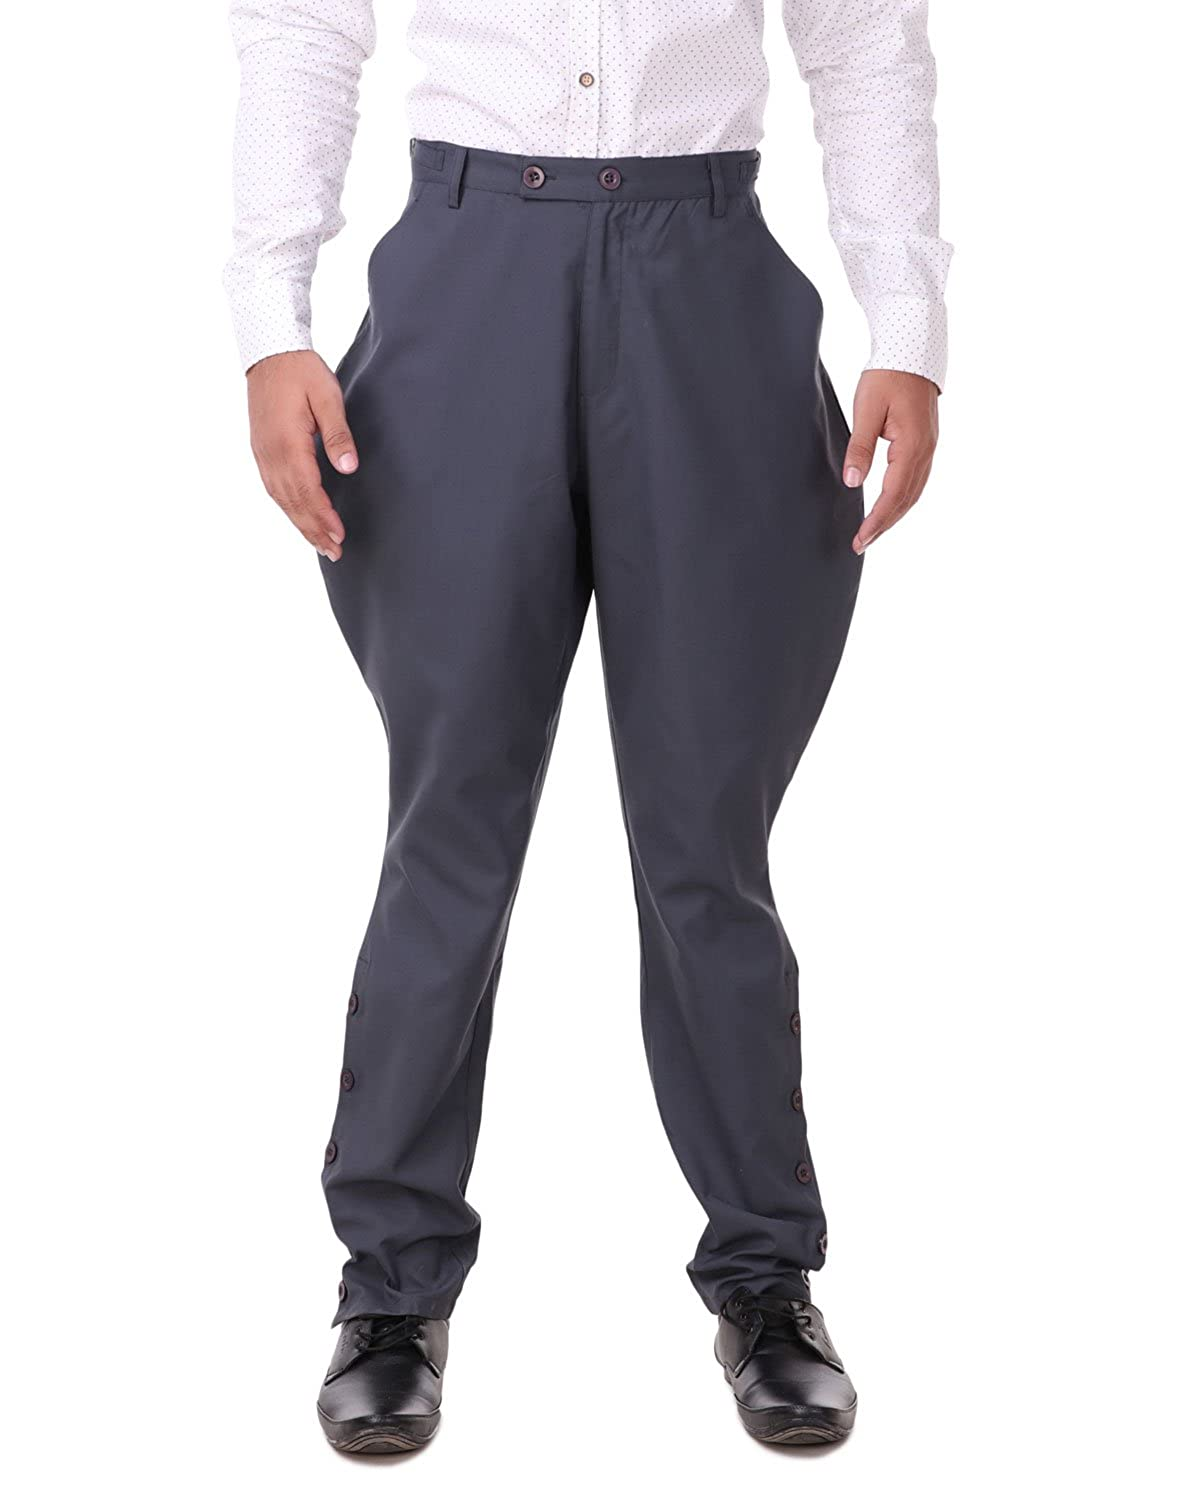 Victorian Men's Costumes: Mad Hatter, Rhet Butler, Willy Wonka ThePirateDressing Steampunk Victorian Cosplay Costume Mens Archibald Jodhpur Pants Trousers C1326 $49.95 AT vintagedancer.com